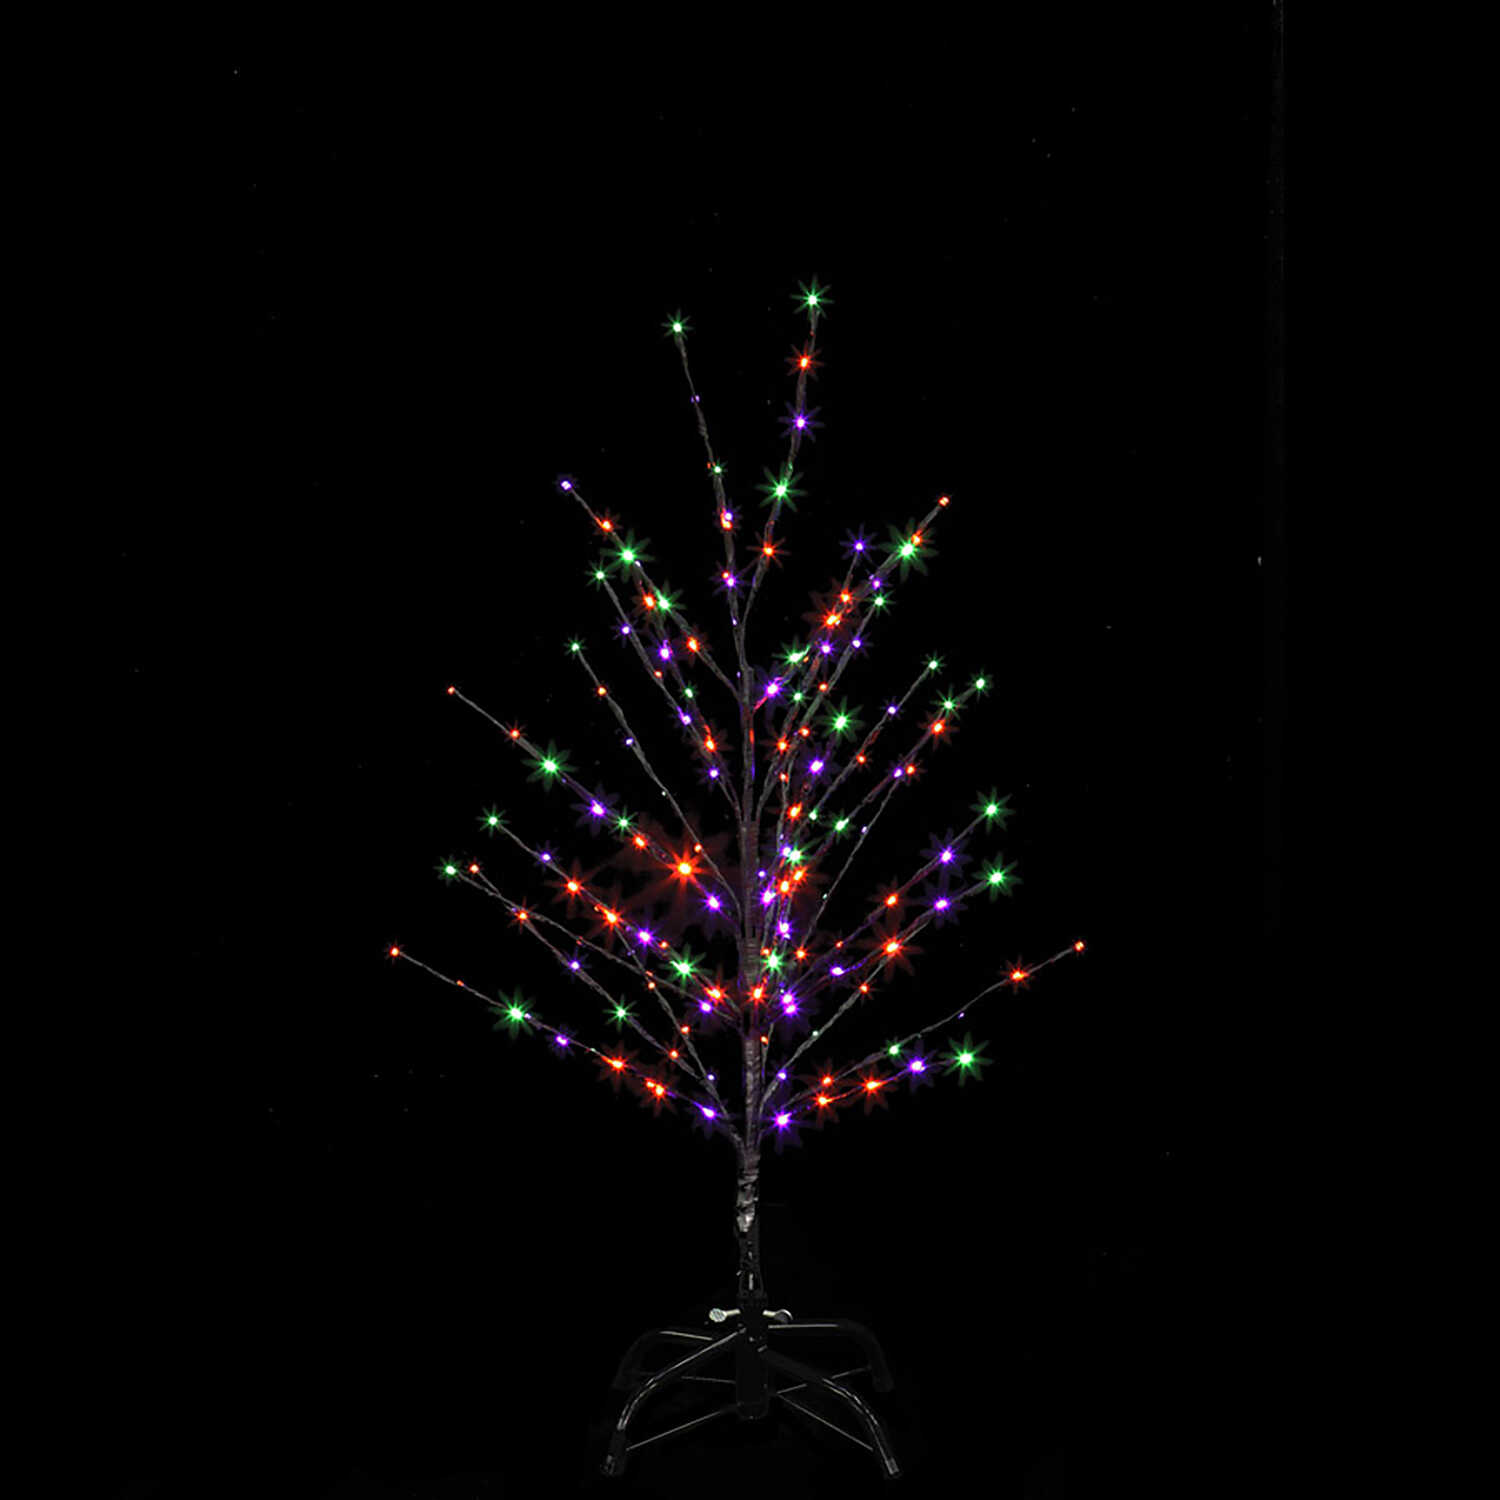 Santa's Best  Twig Tree  Lighted Halloween Decoration  36 in. H x 24 in. W x 24 in. L 1 pk